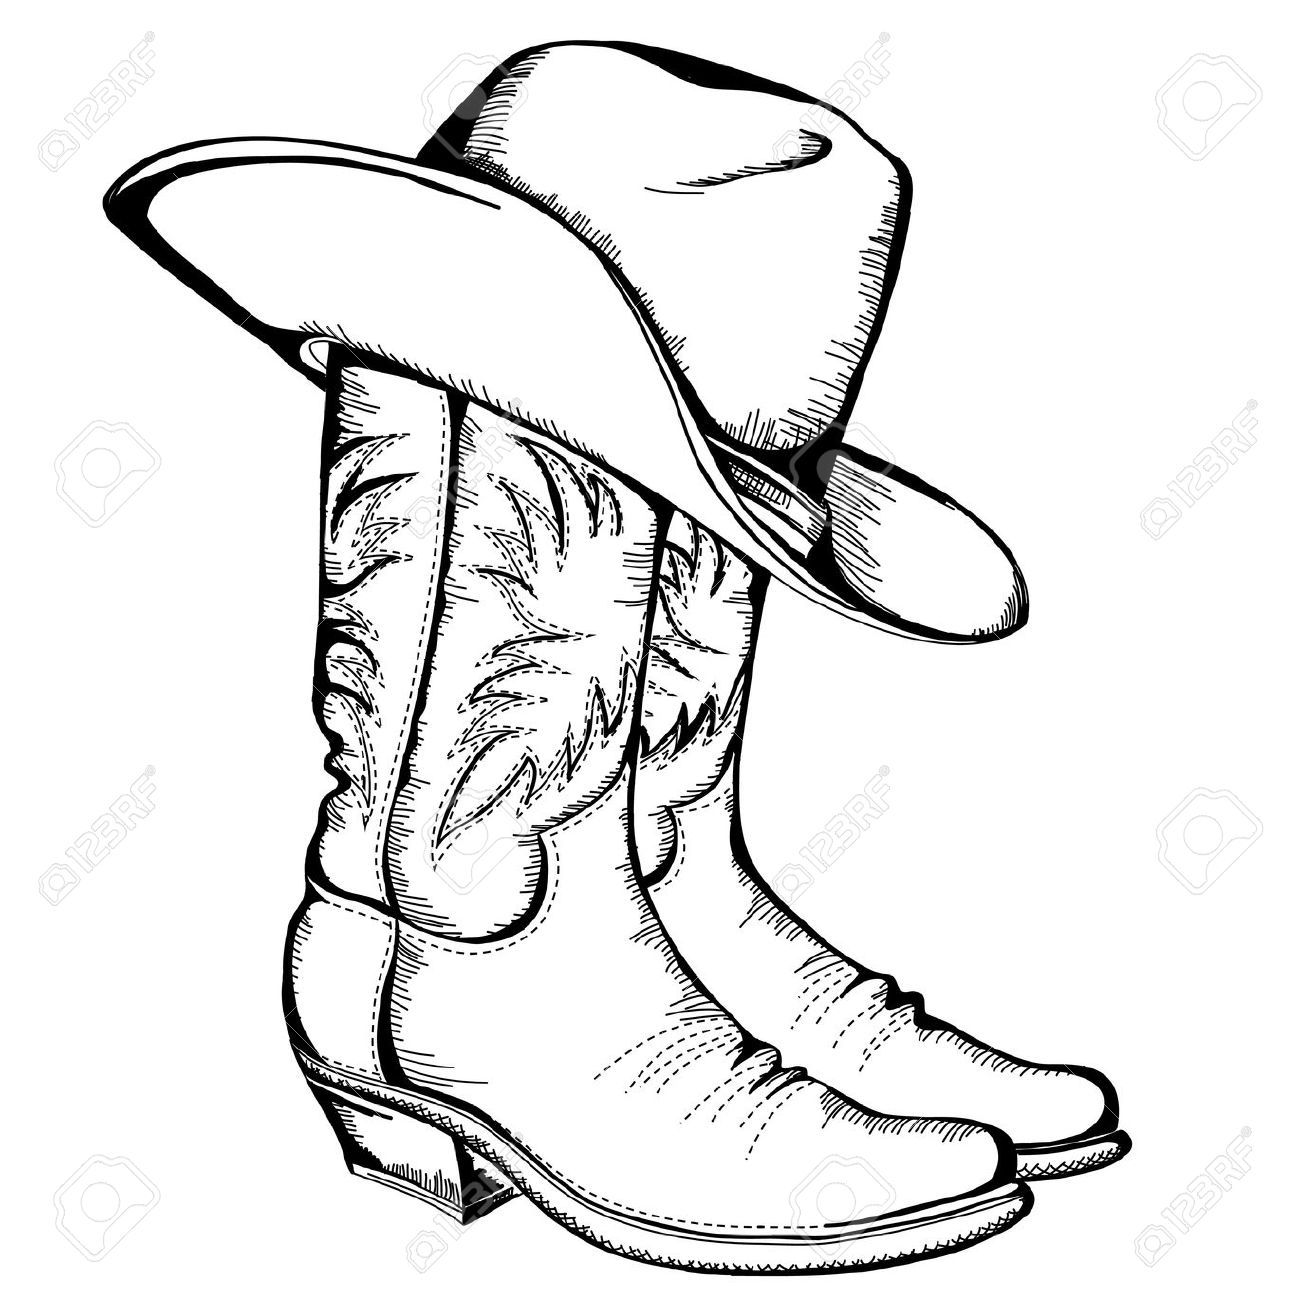 small resolution of cowboy boots and hat graphic illustration royalty free cliparts vectors and stock illustration image 17229564